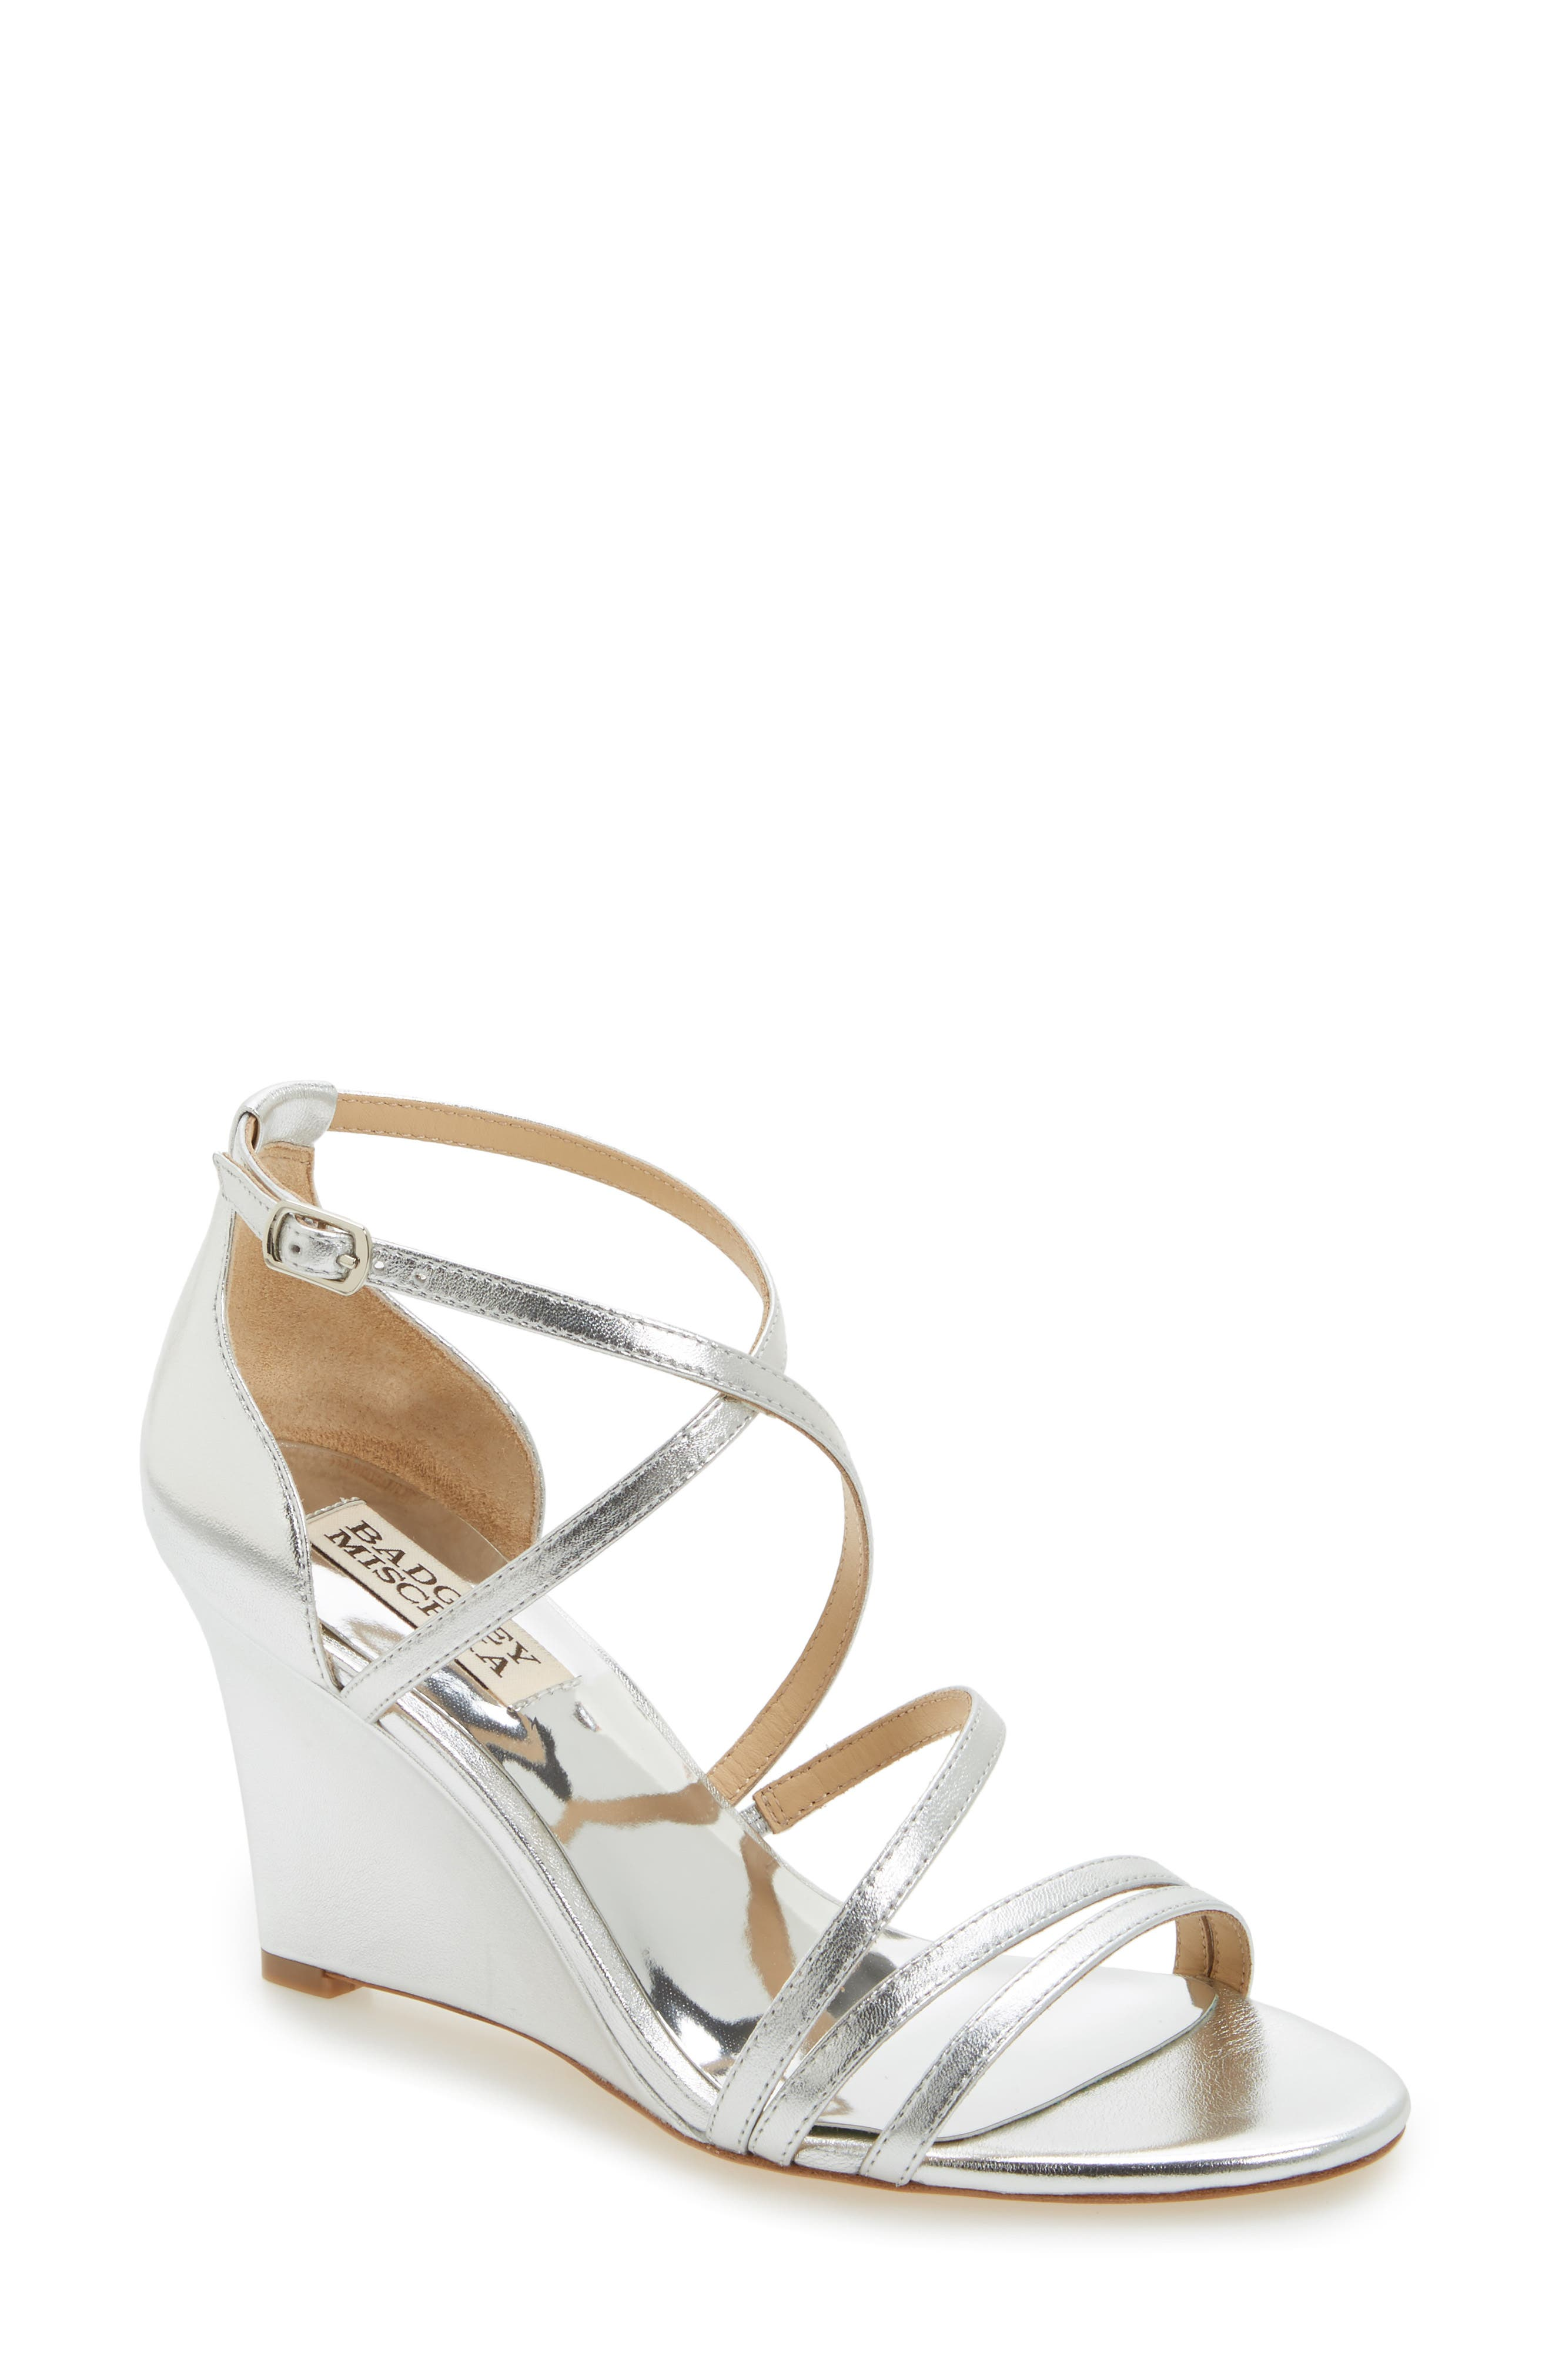 Bonanza Strappy Wedge Sandal,                         Main,                         color, 046